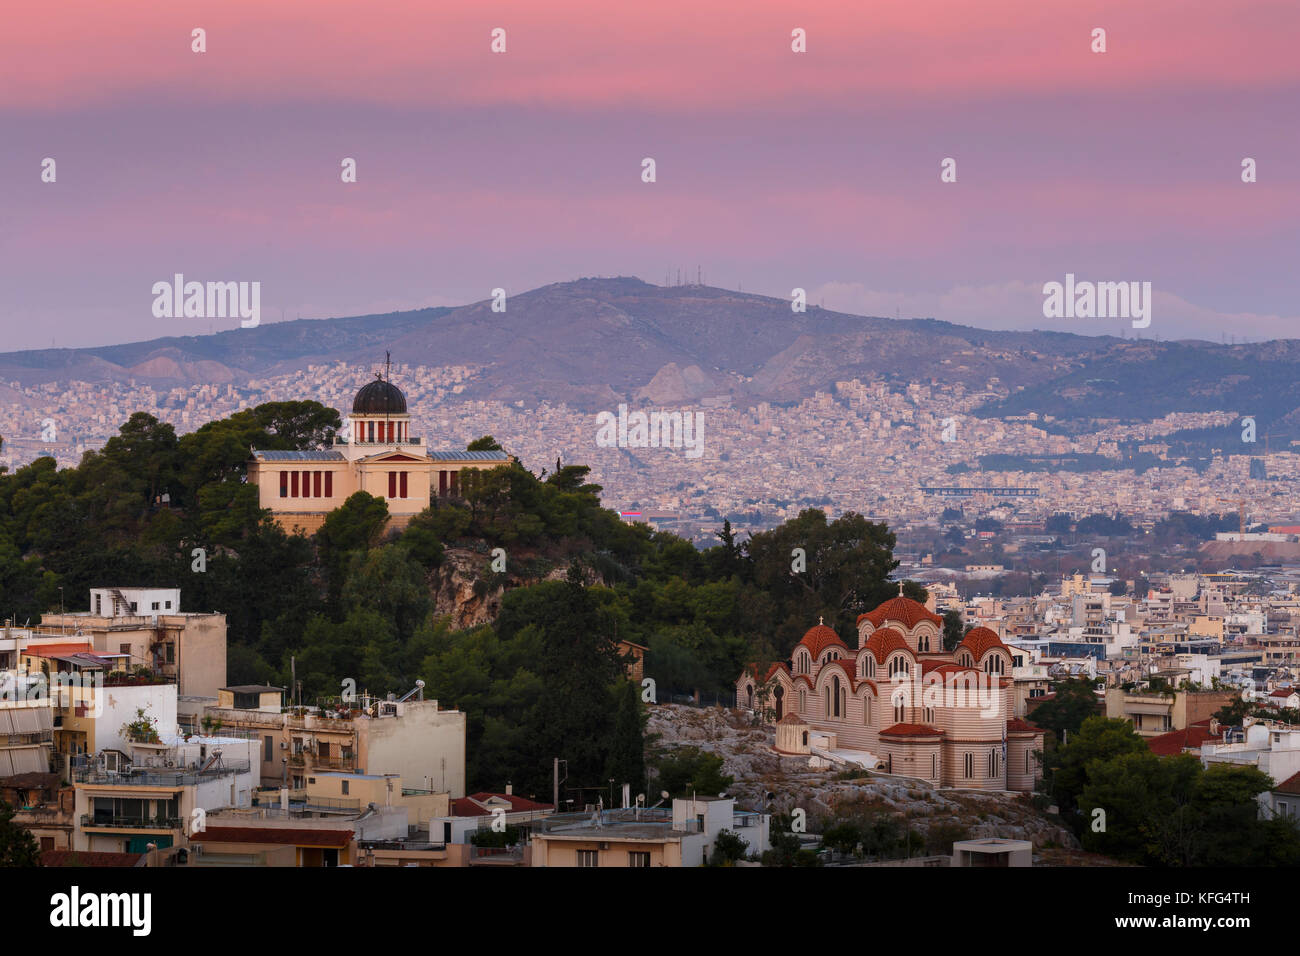 National Observatory in the  city of Athens, Greece. - Stock Image